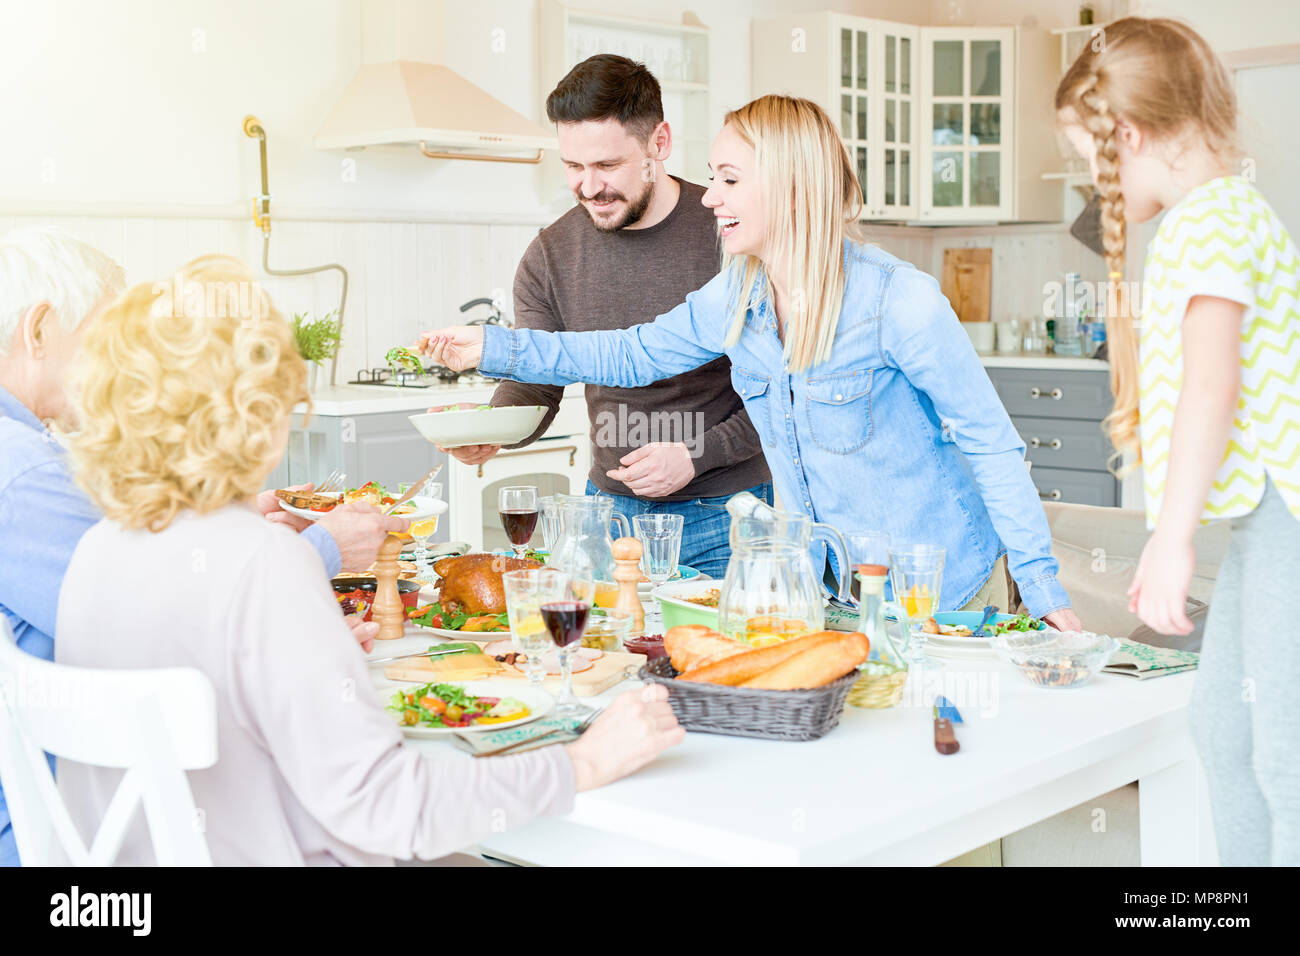 Festive Family Dinner in Modern Apartment - Stock Image